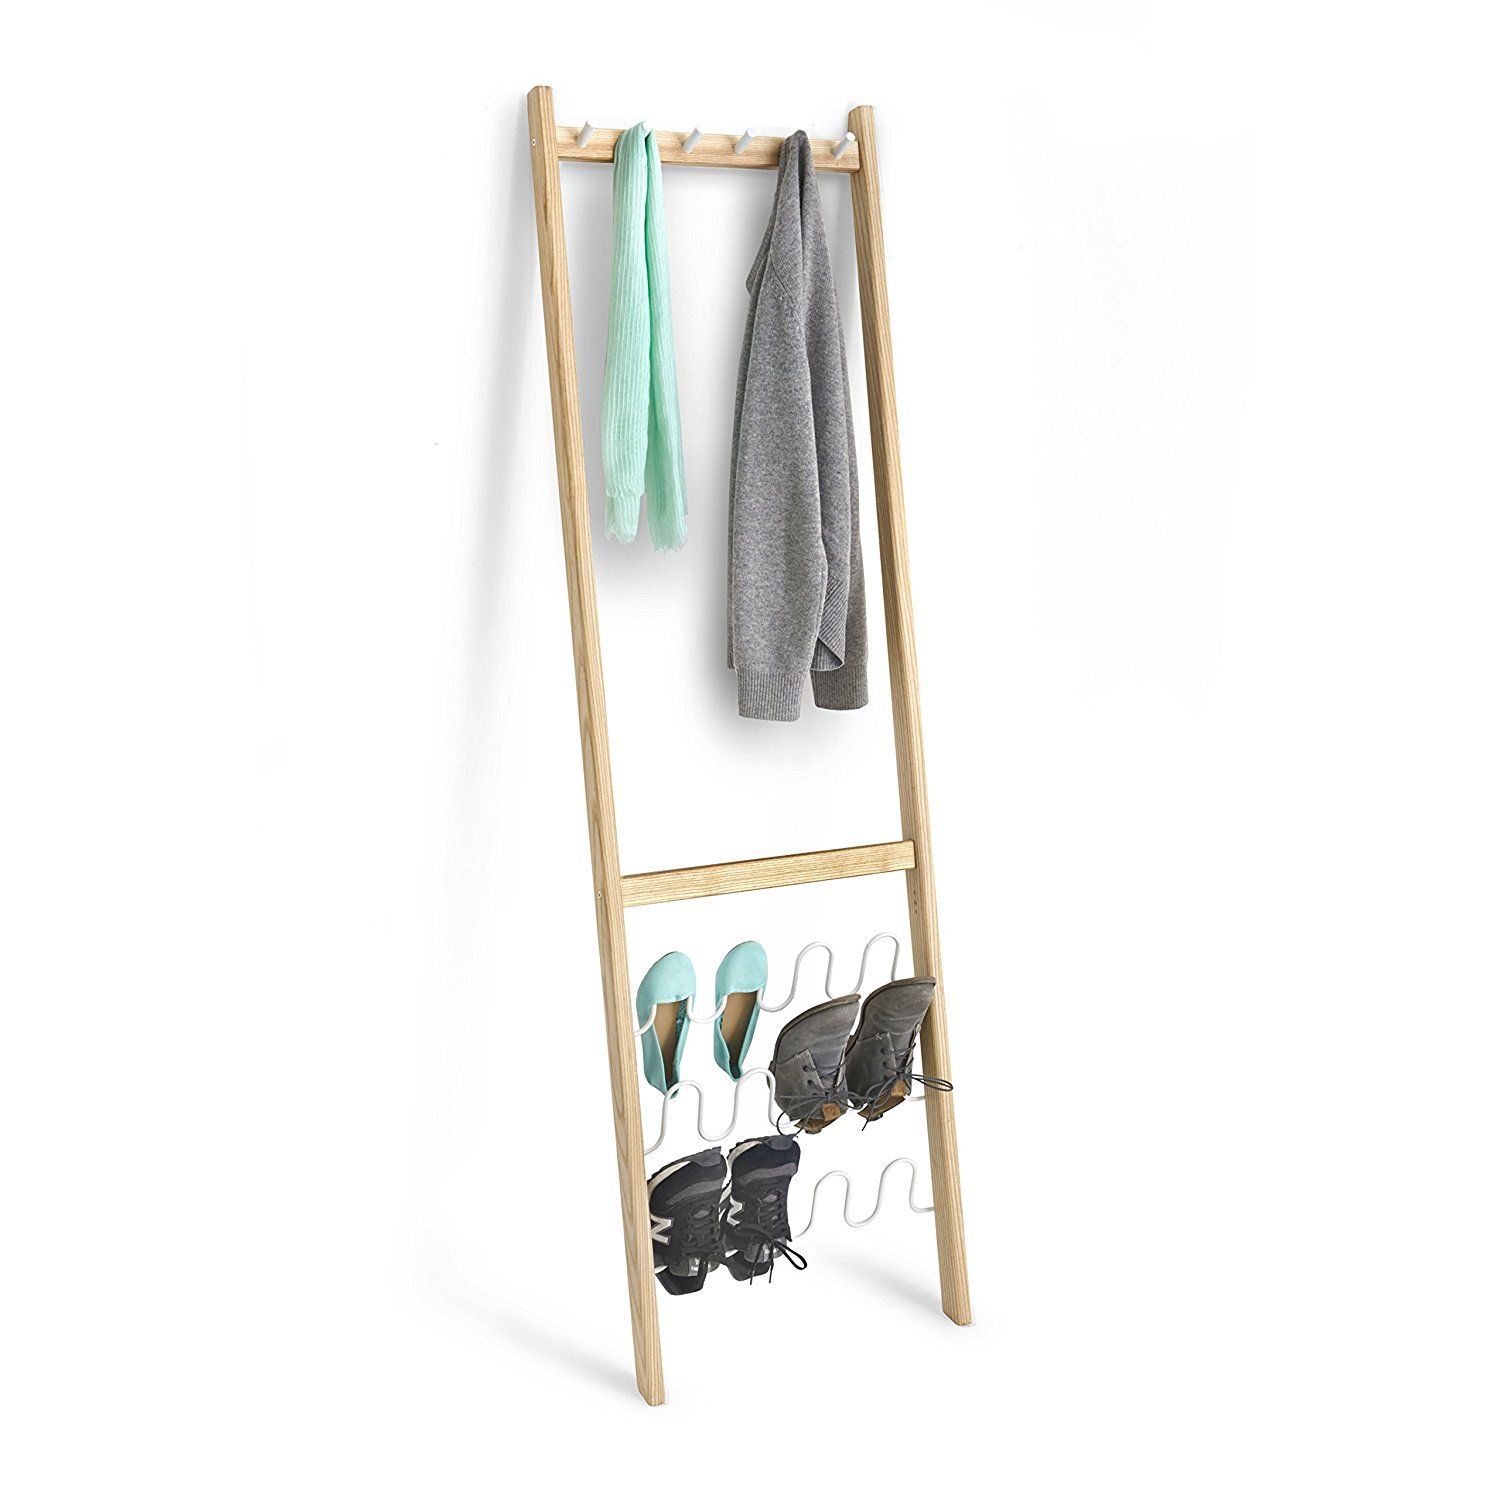 Amazon.com: Umbra Leanera Free-Standing Coat and Shoe Rack: Home & Kitchen